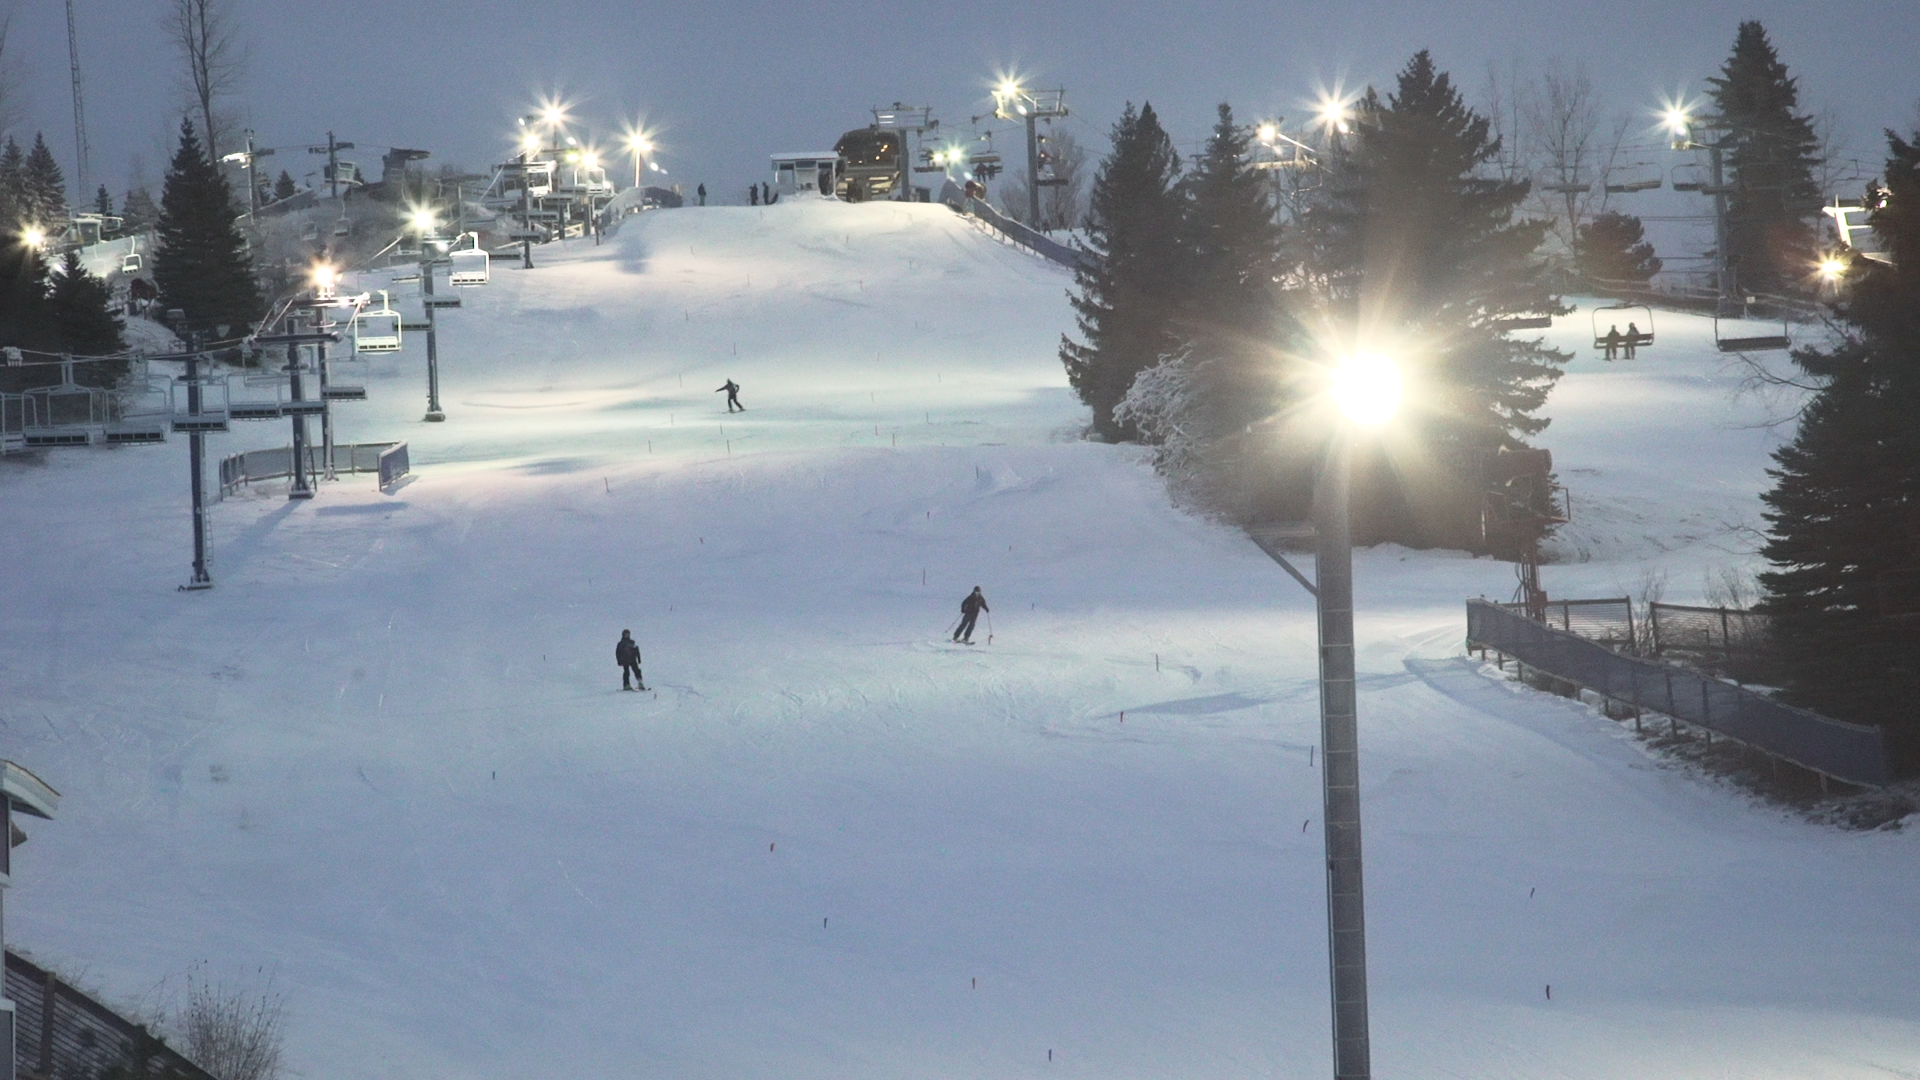 Three skiers ride down Mt. Holly in a dark Michigan night lit up by the lights of the resort.